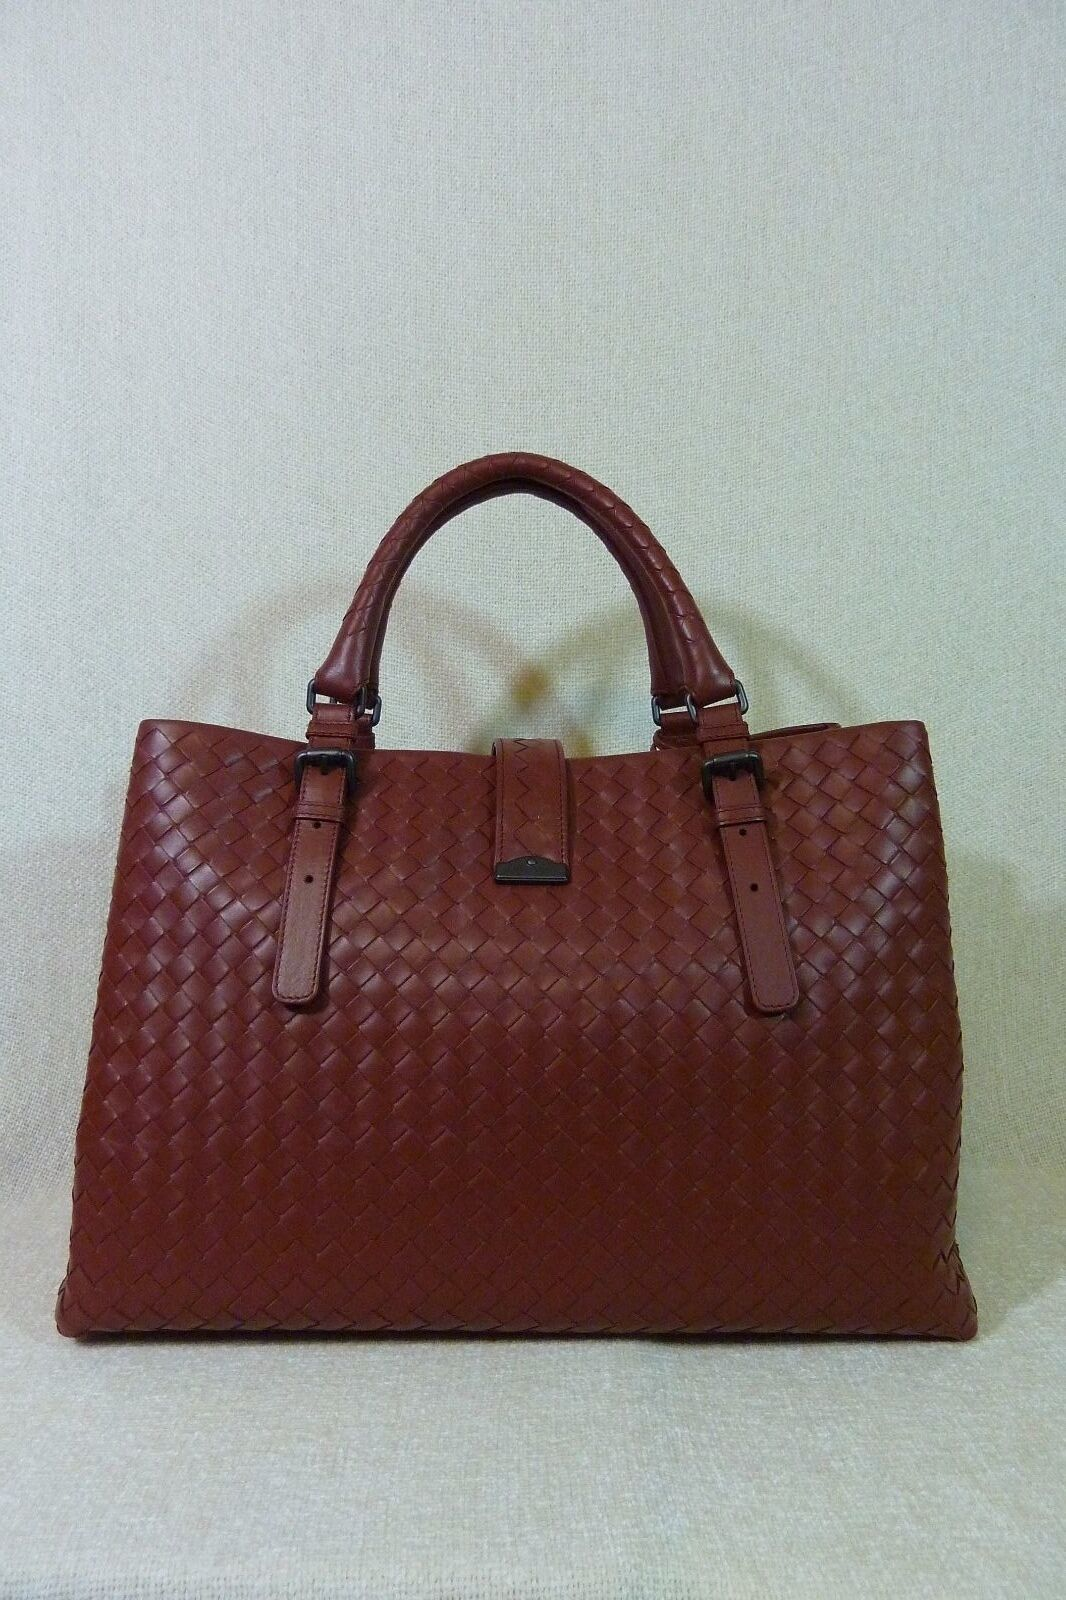 AUTH NWT Bottega Veneta Medium Roma Bag In Russet Intrecciato Calf Leather image 7